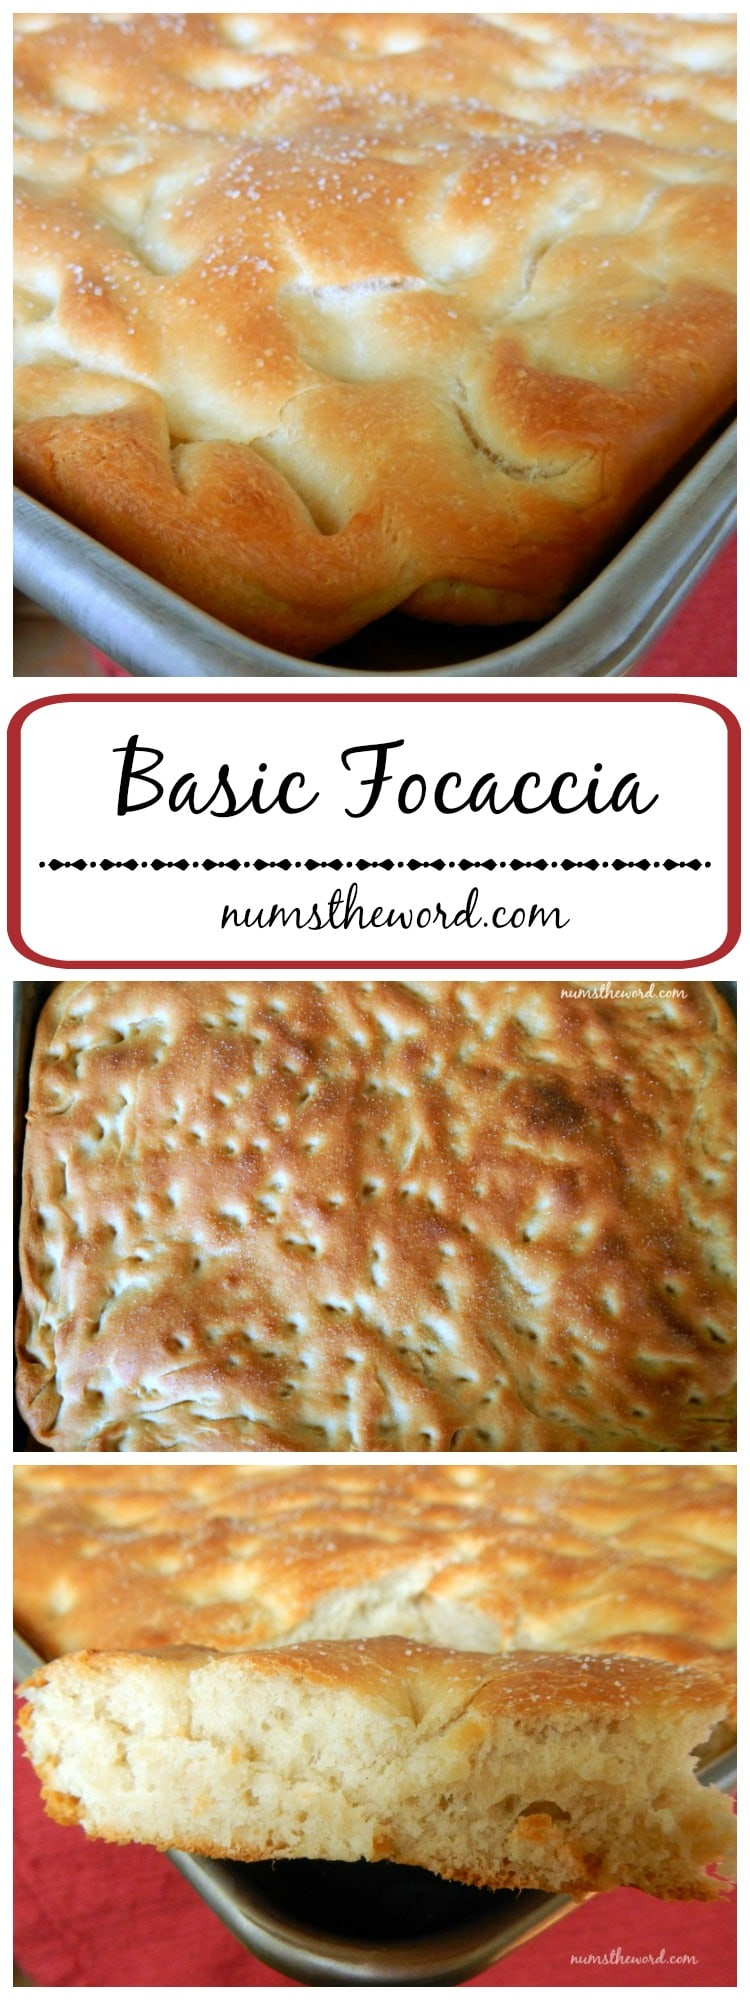 Basic Focaccia Bread LONG